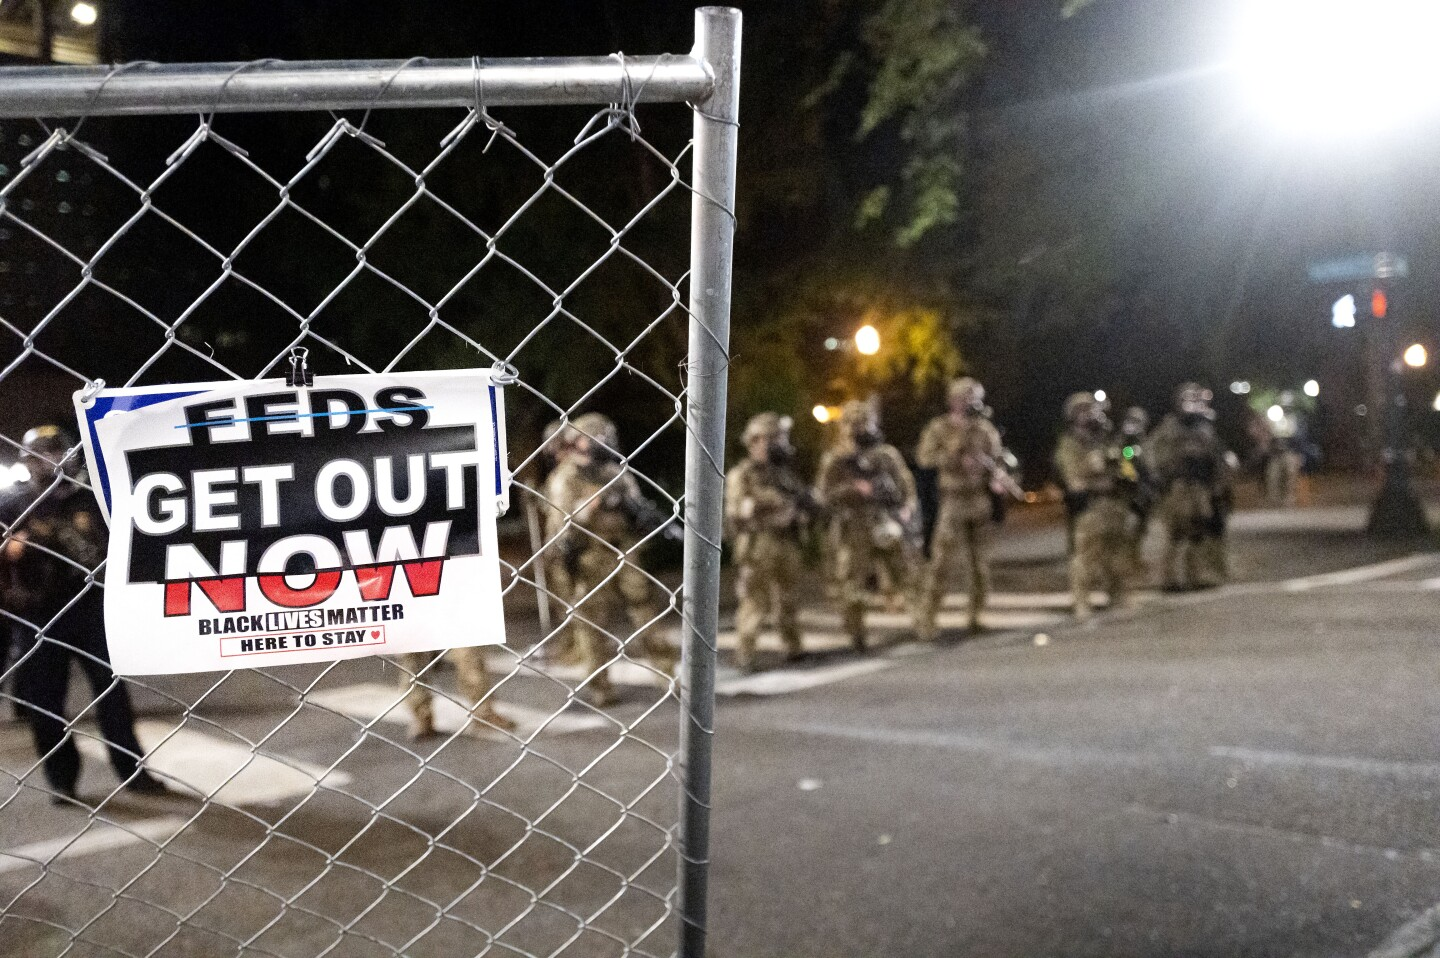 Federal agents disperse Black Lives Matter protesters near the Mark O. Hatfield United States Courthouse on Monday, July 20, 2020, in Portland, Ore. Officers used teargas and projectiles to move the crowd after some protesters tore down a fence fronting the courthouse. (AP Photo/Noah Berger)